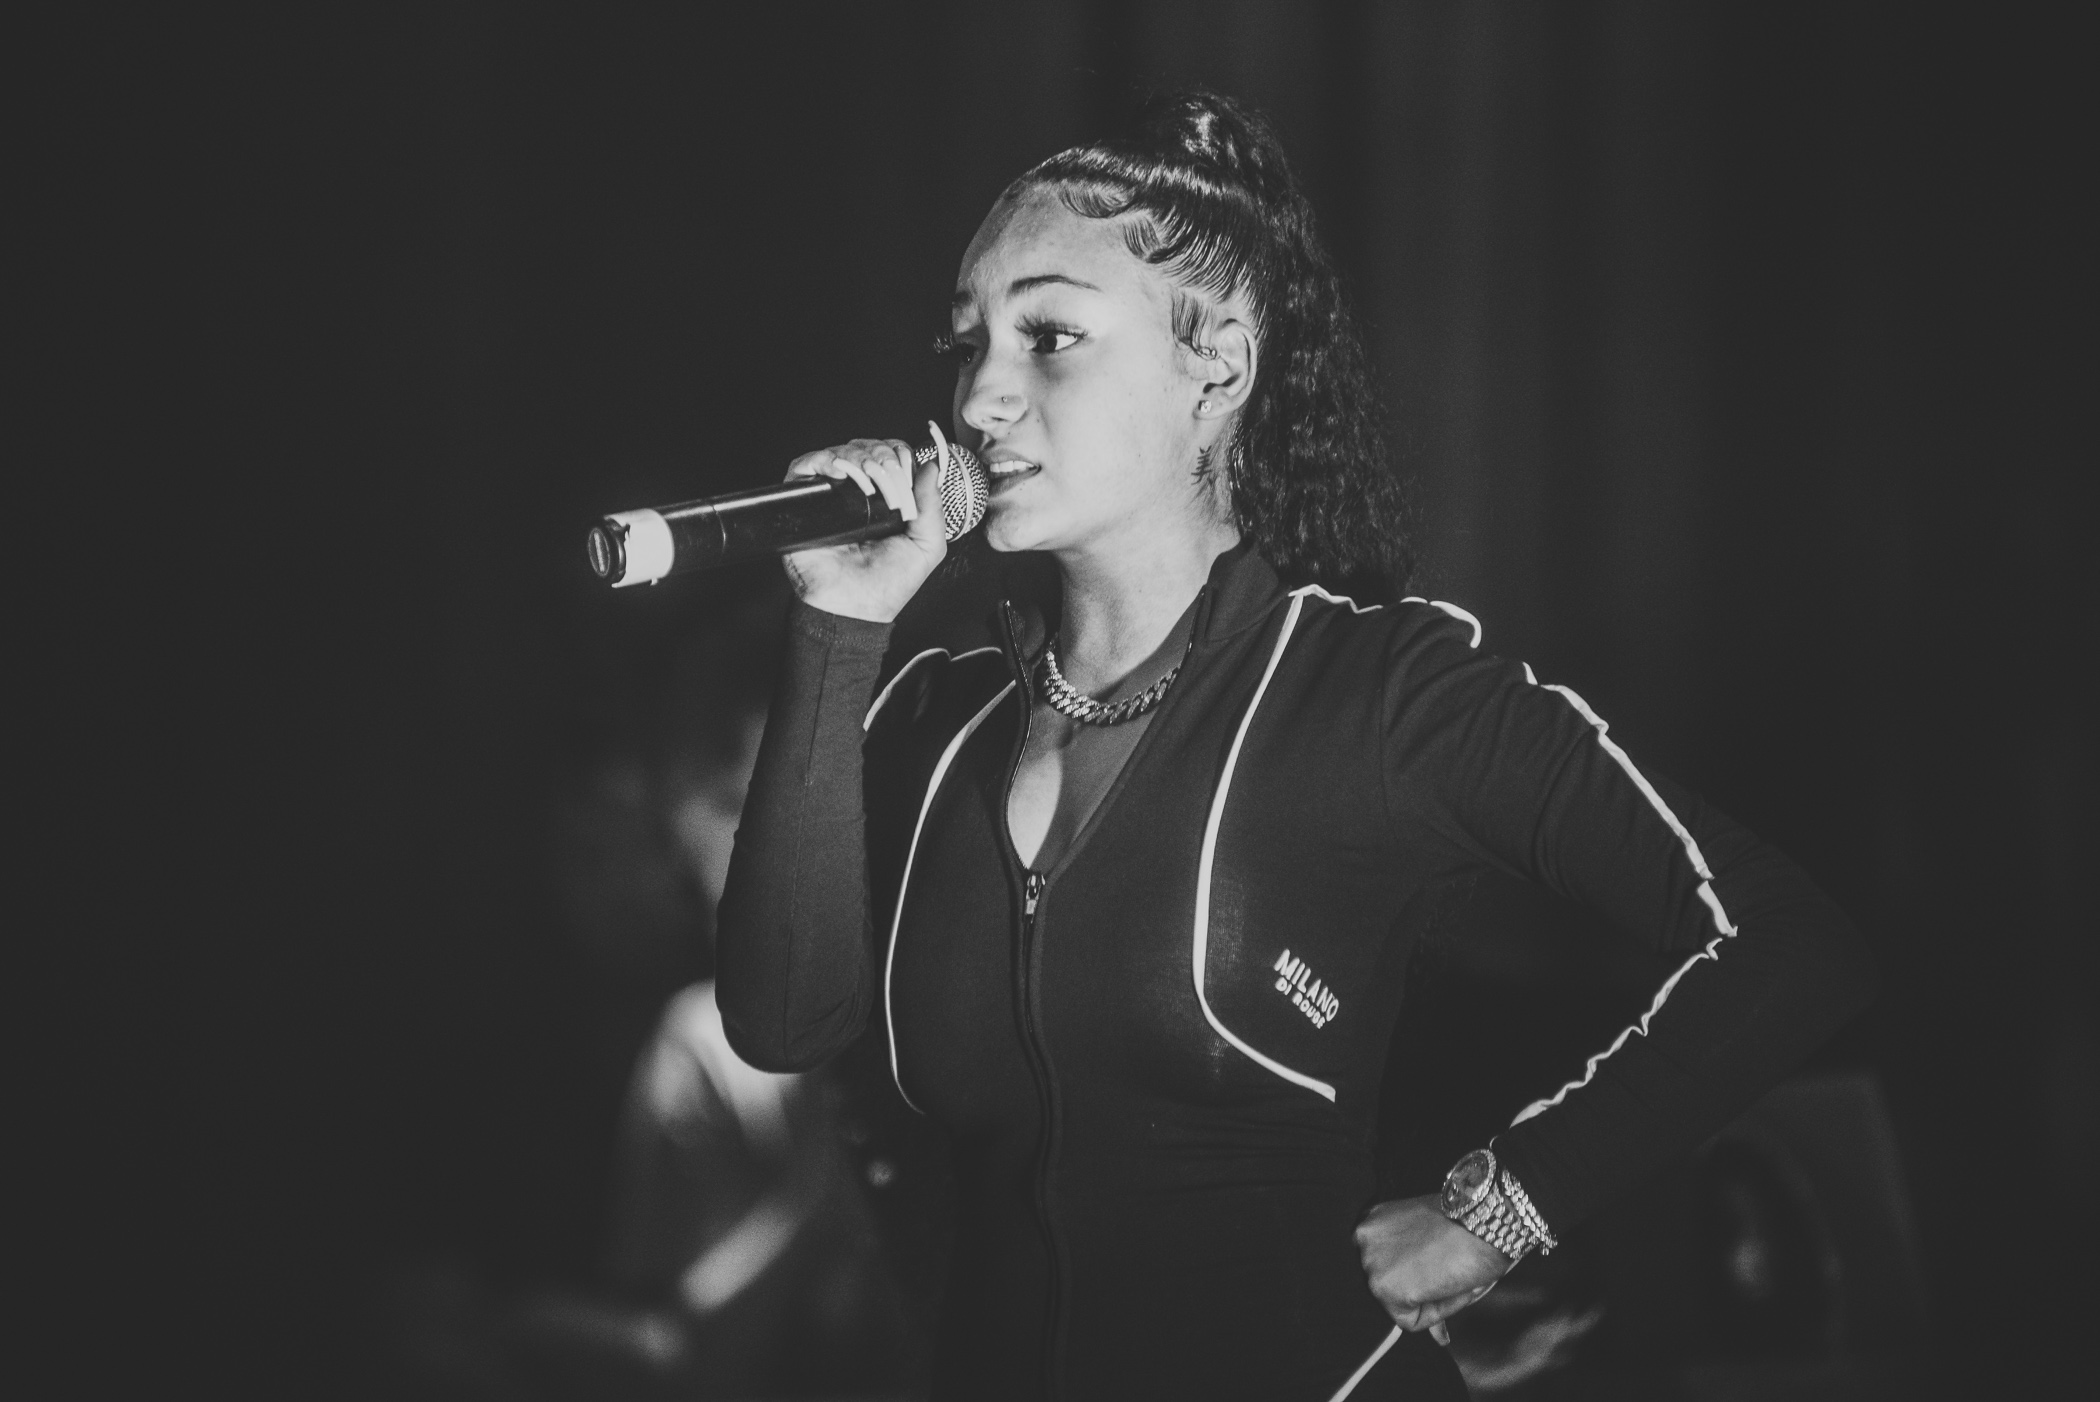 1_Bhad_Bhabie-VENUE-Timothy_Nguyen-20190510 (25 of 45).JPG